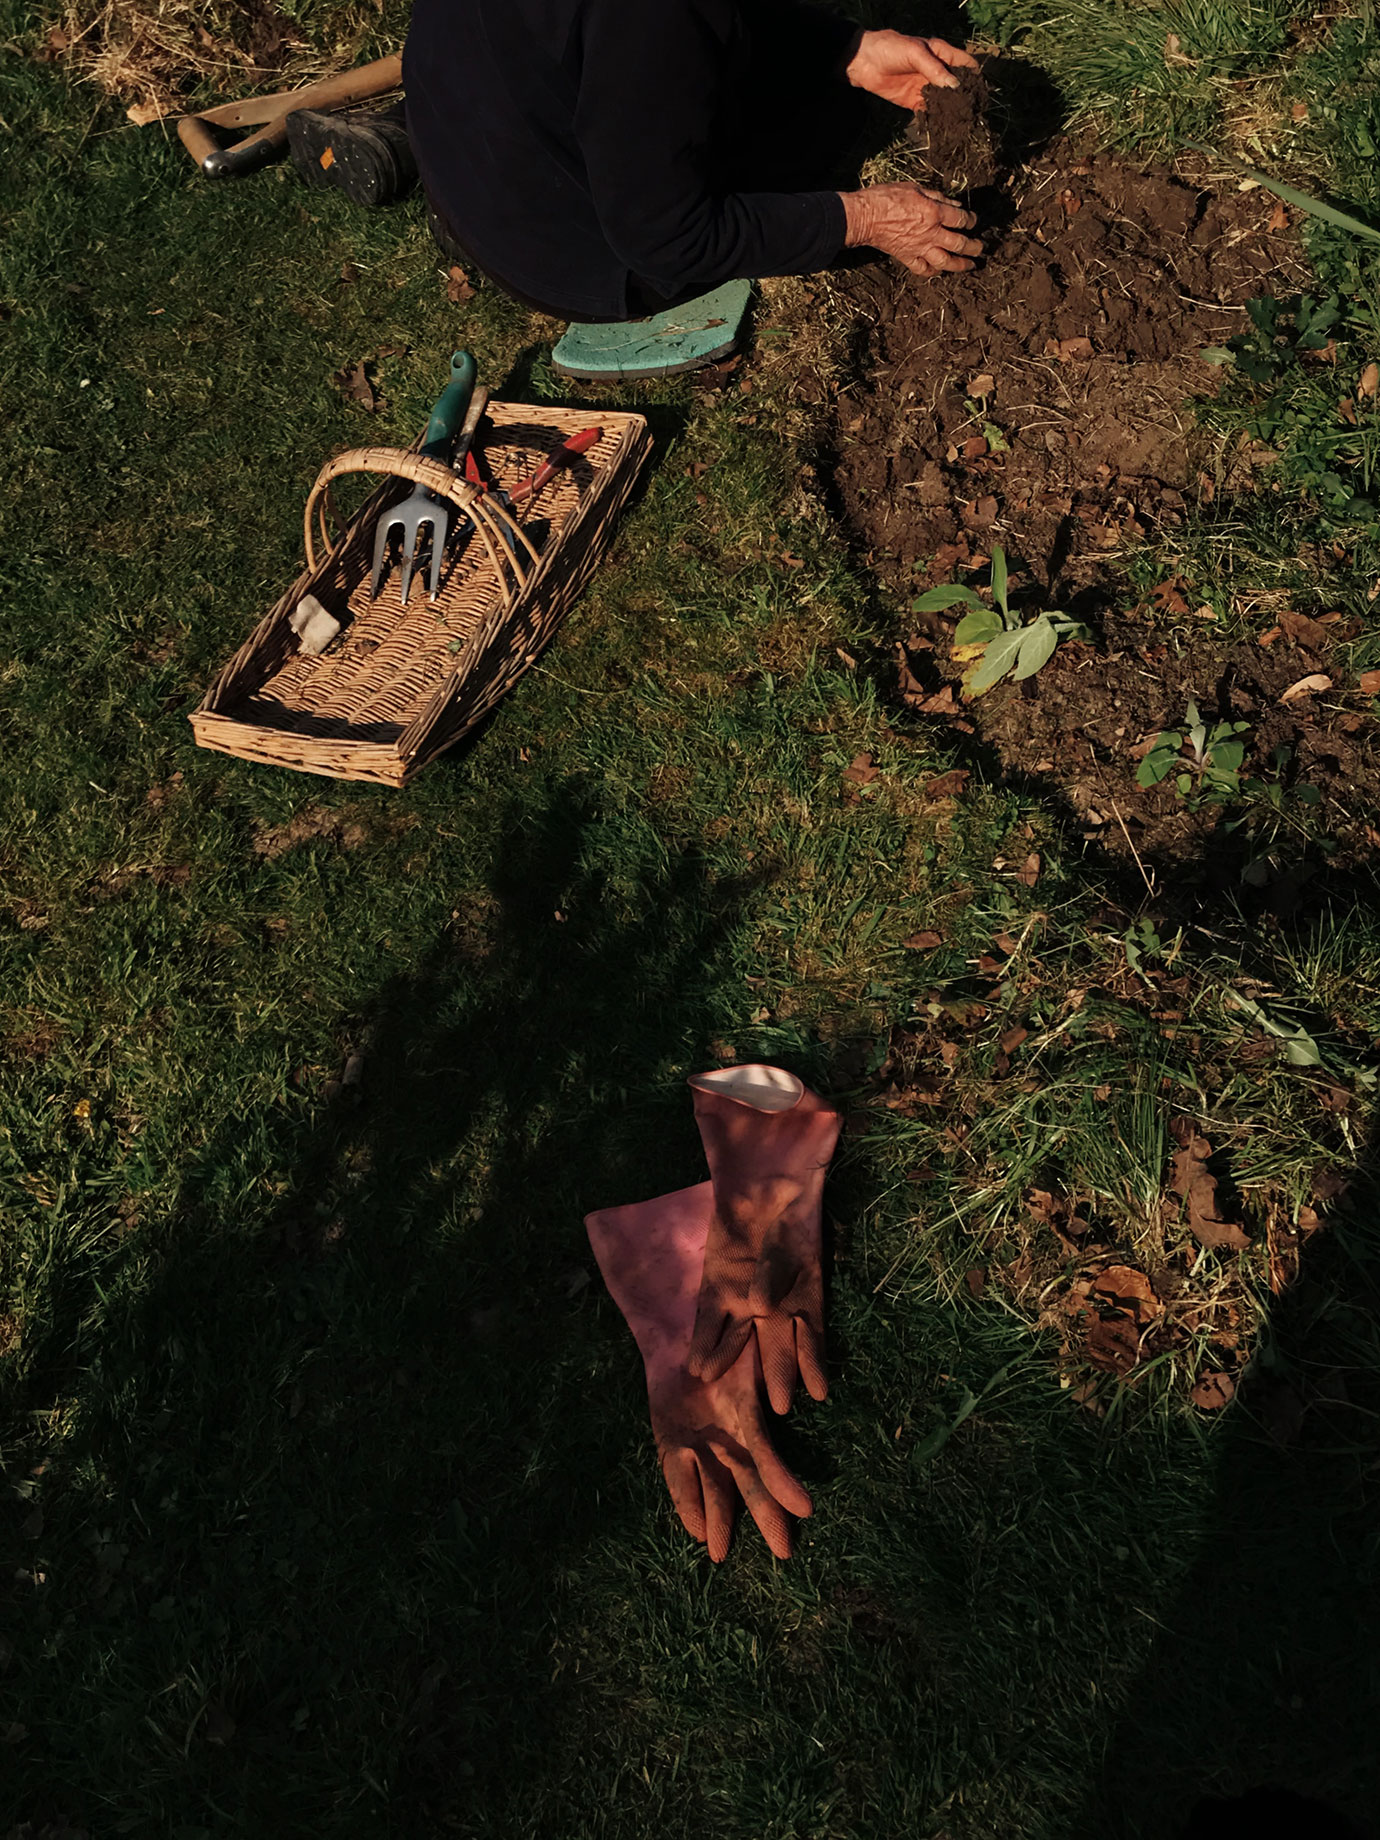 A person gardening.